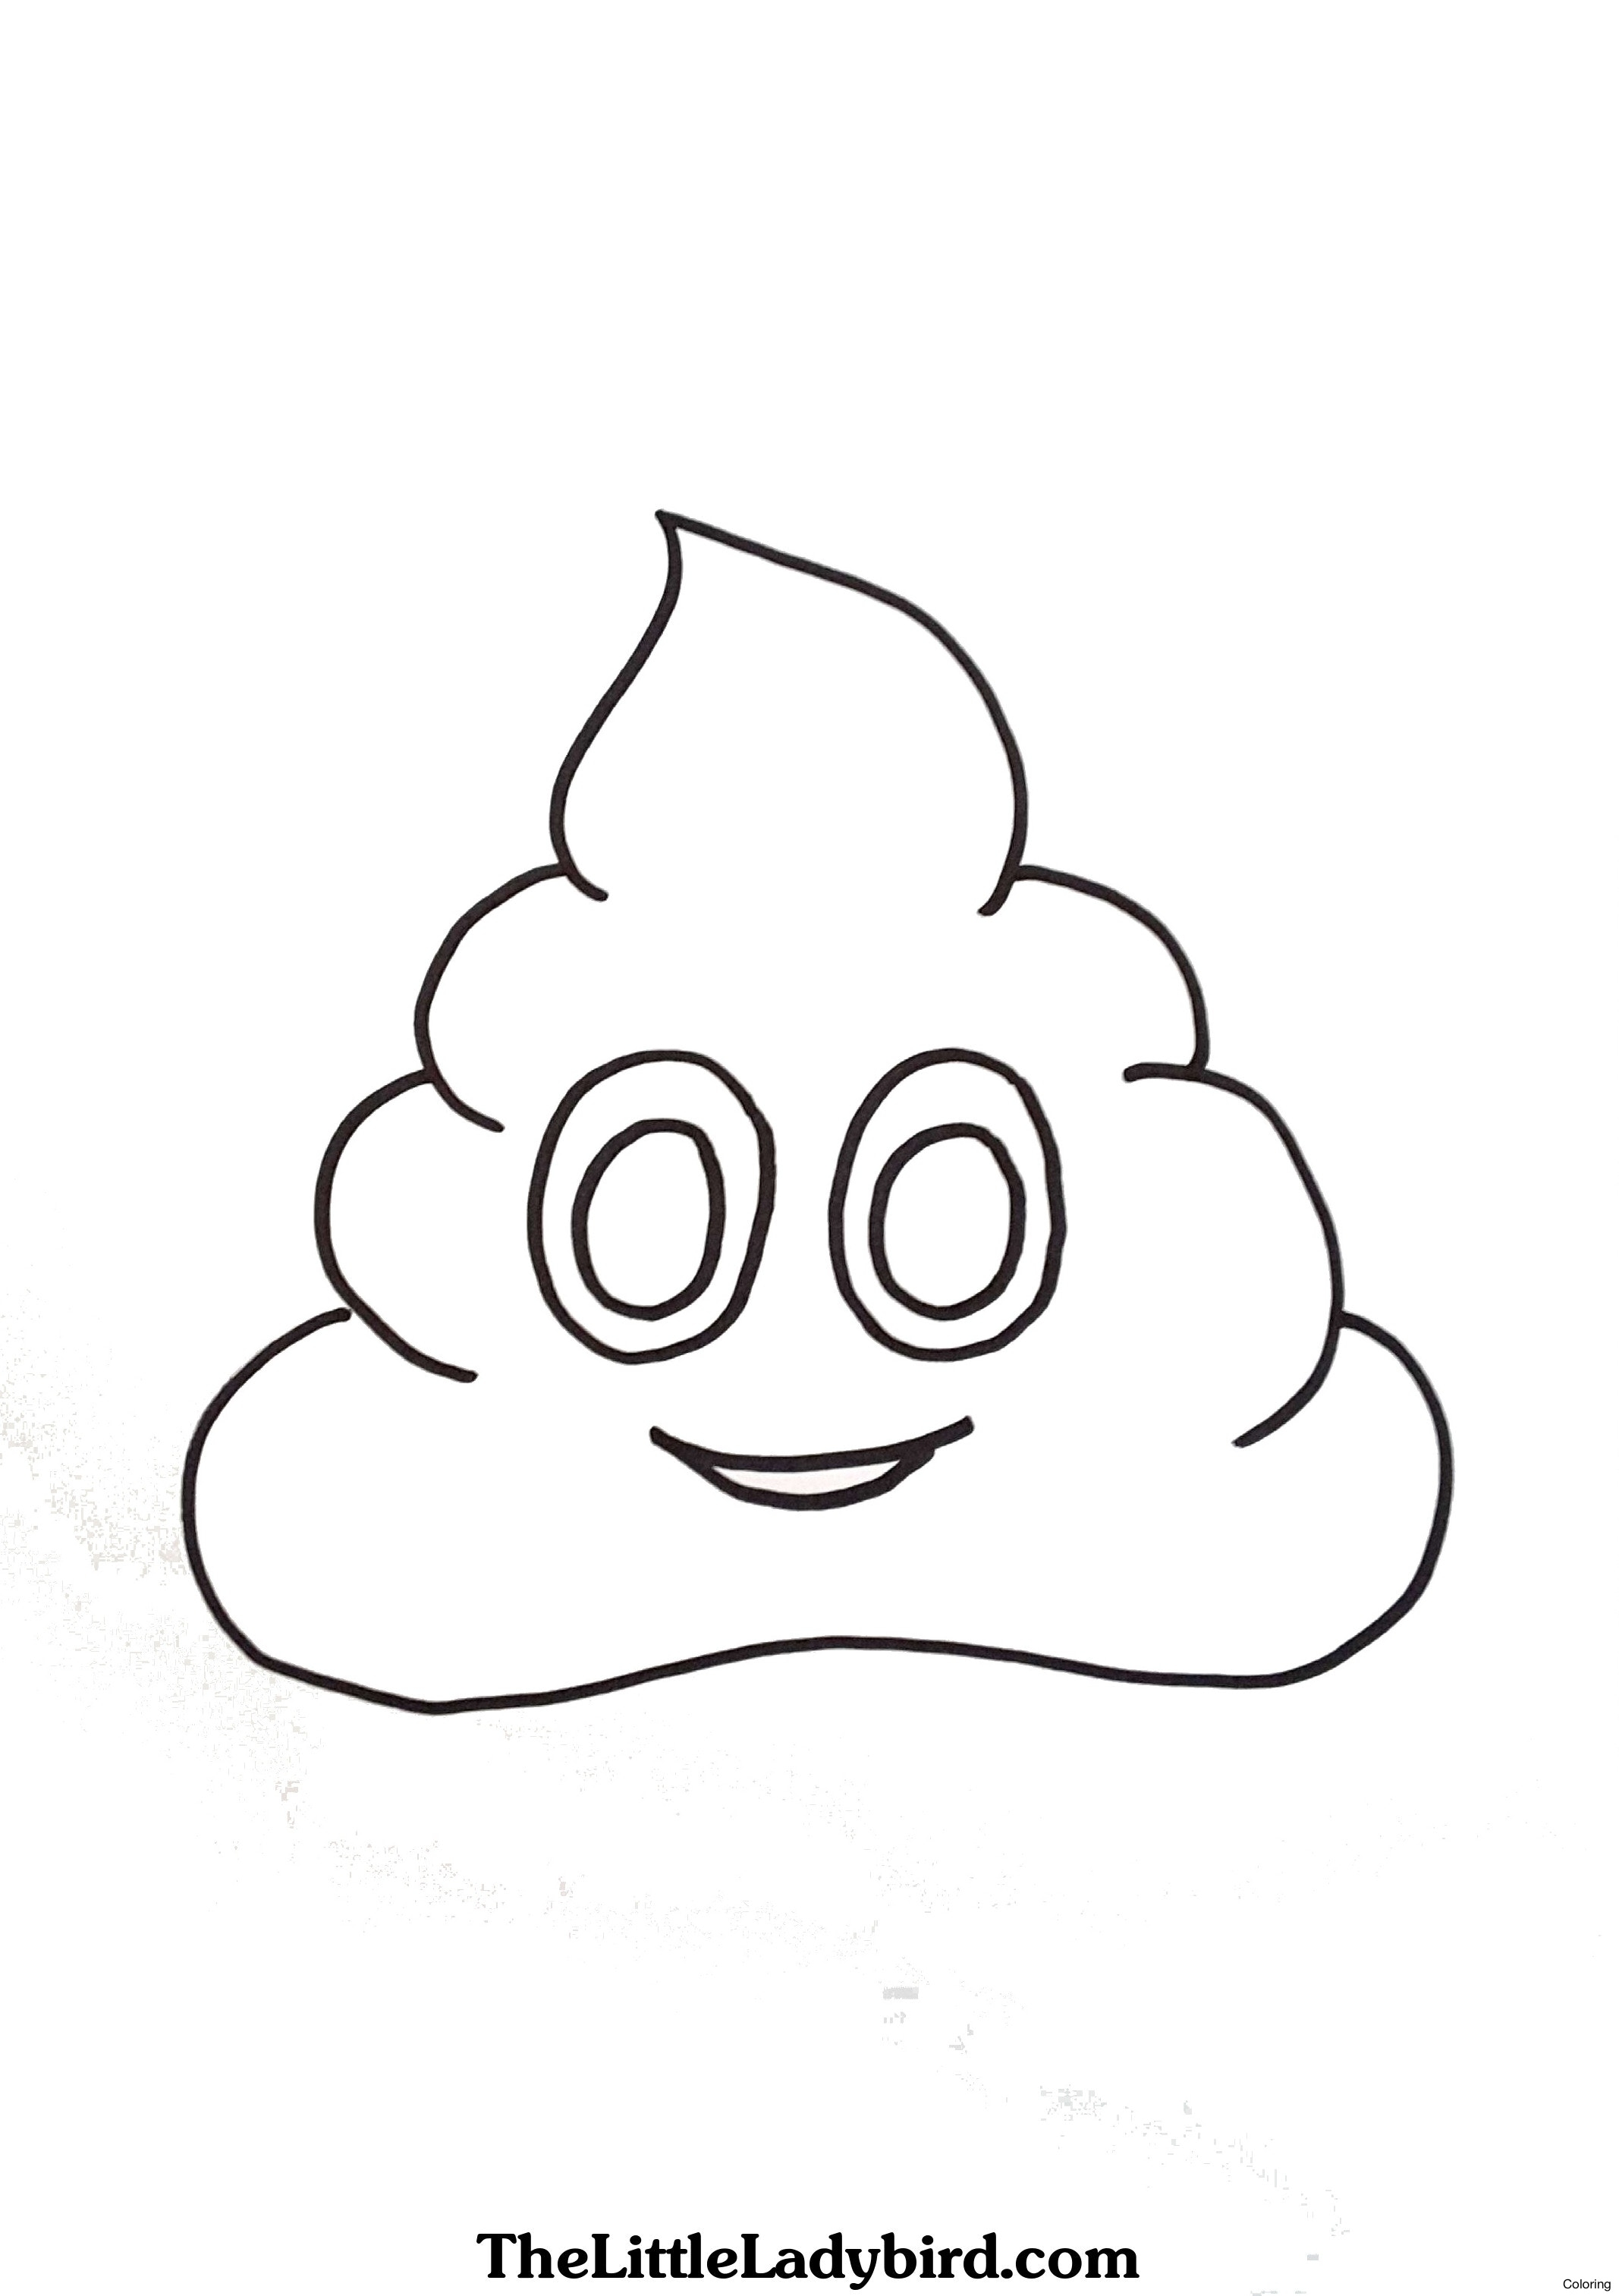 2134x3026 Emoji Movie Poop Coloring Page Emojis Pages The From To View